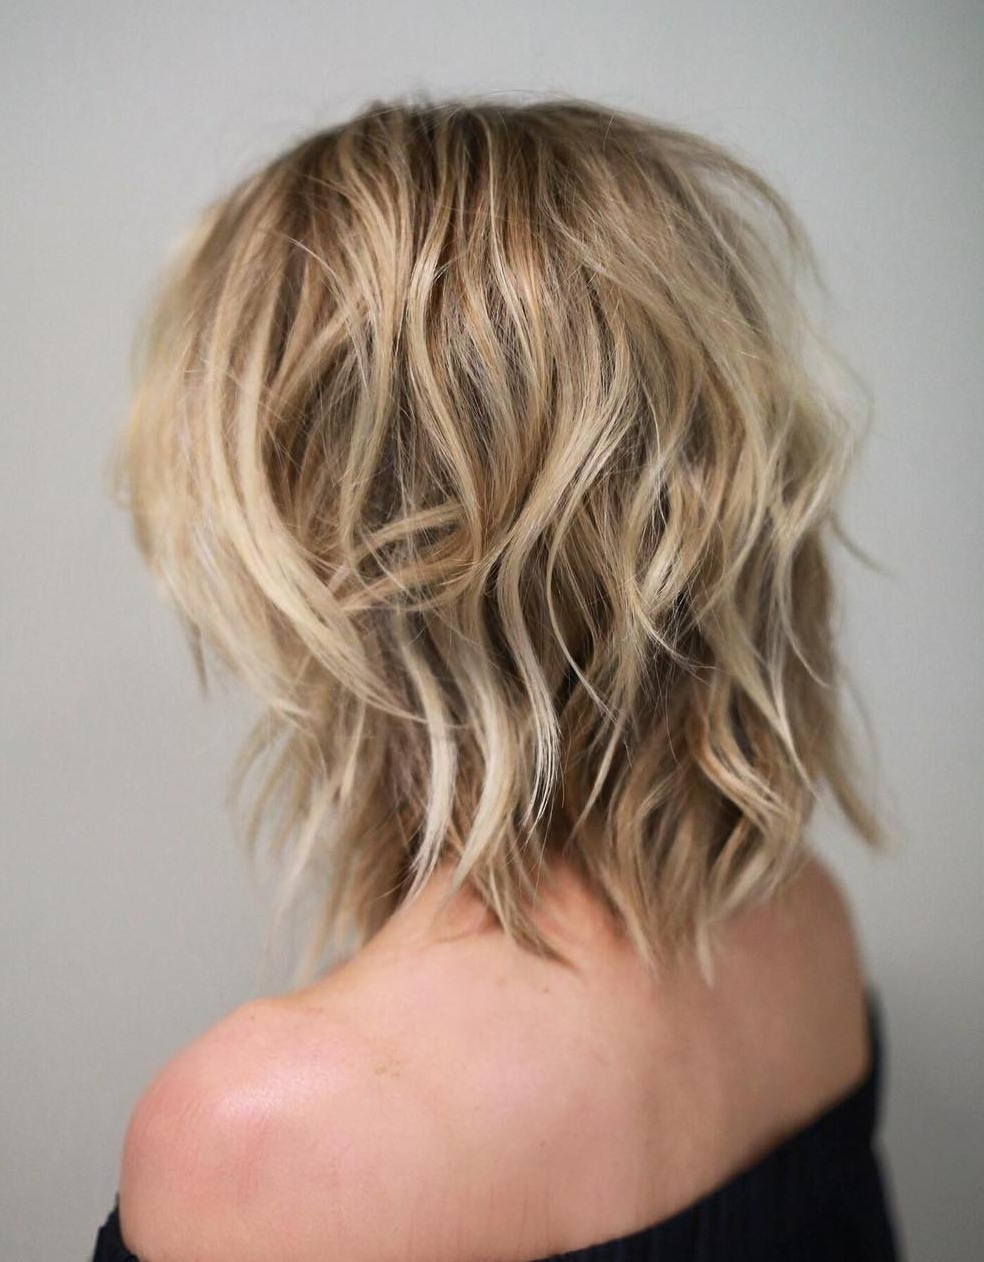 Shag Haircuts And Hairstyles In 2018 — Therighthairstyles Intended For Best And Newest Modern Shaggy Hairstyles (View 11 of 15)